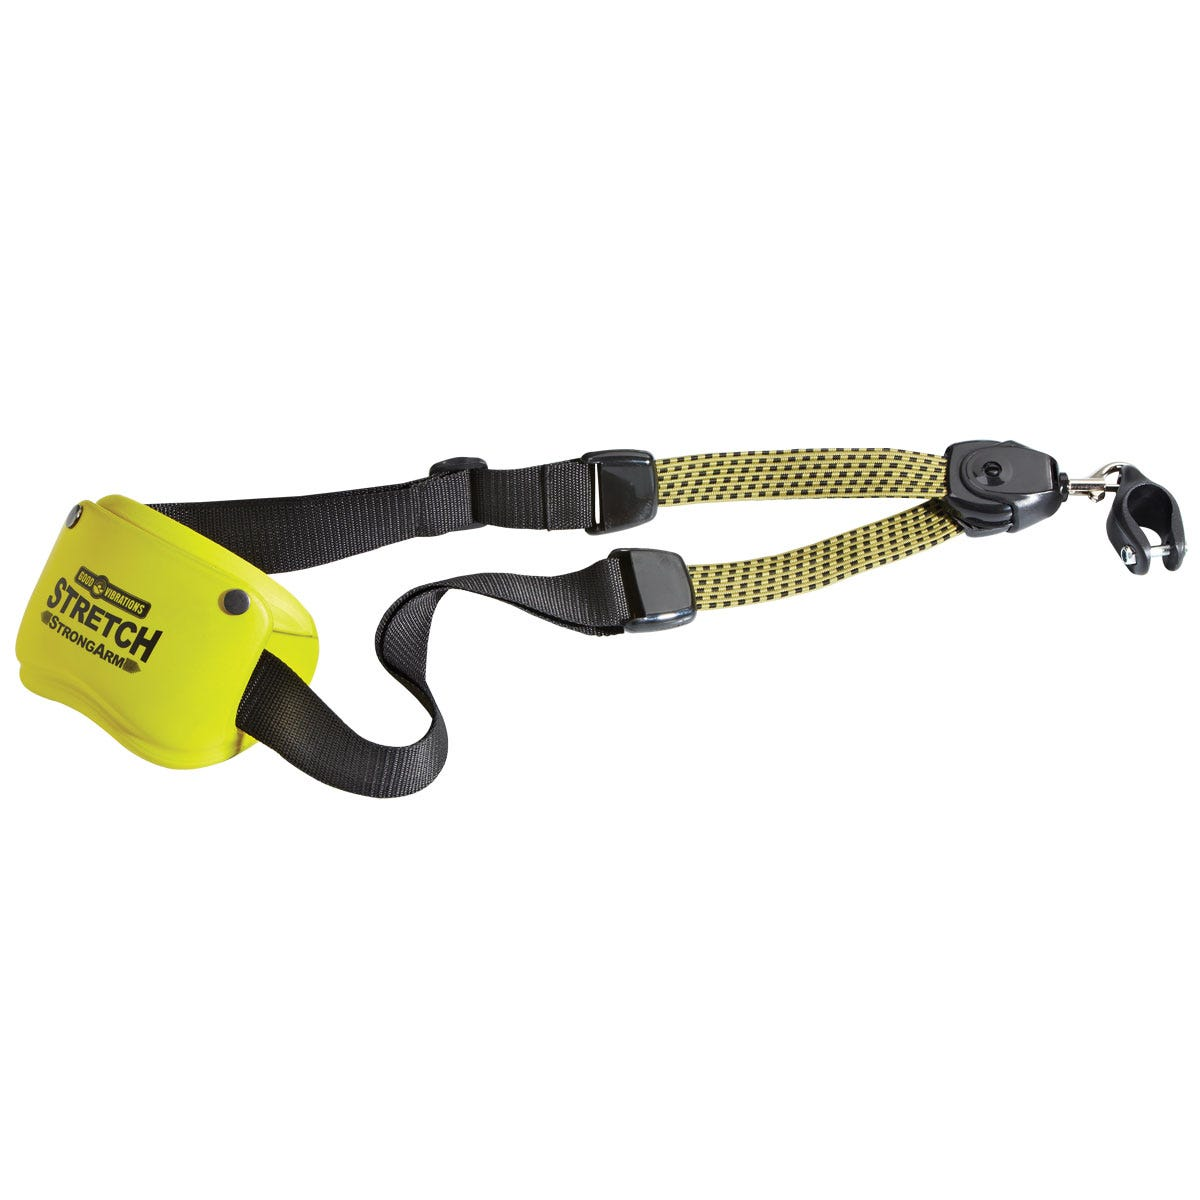 Weight Absorbing Trimmer Strap Lawn Care Lawn Care